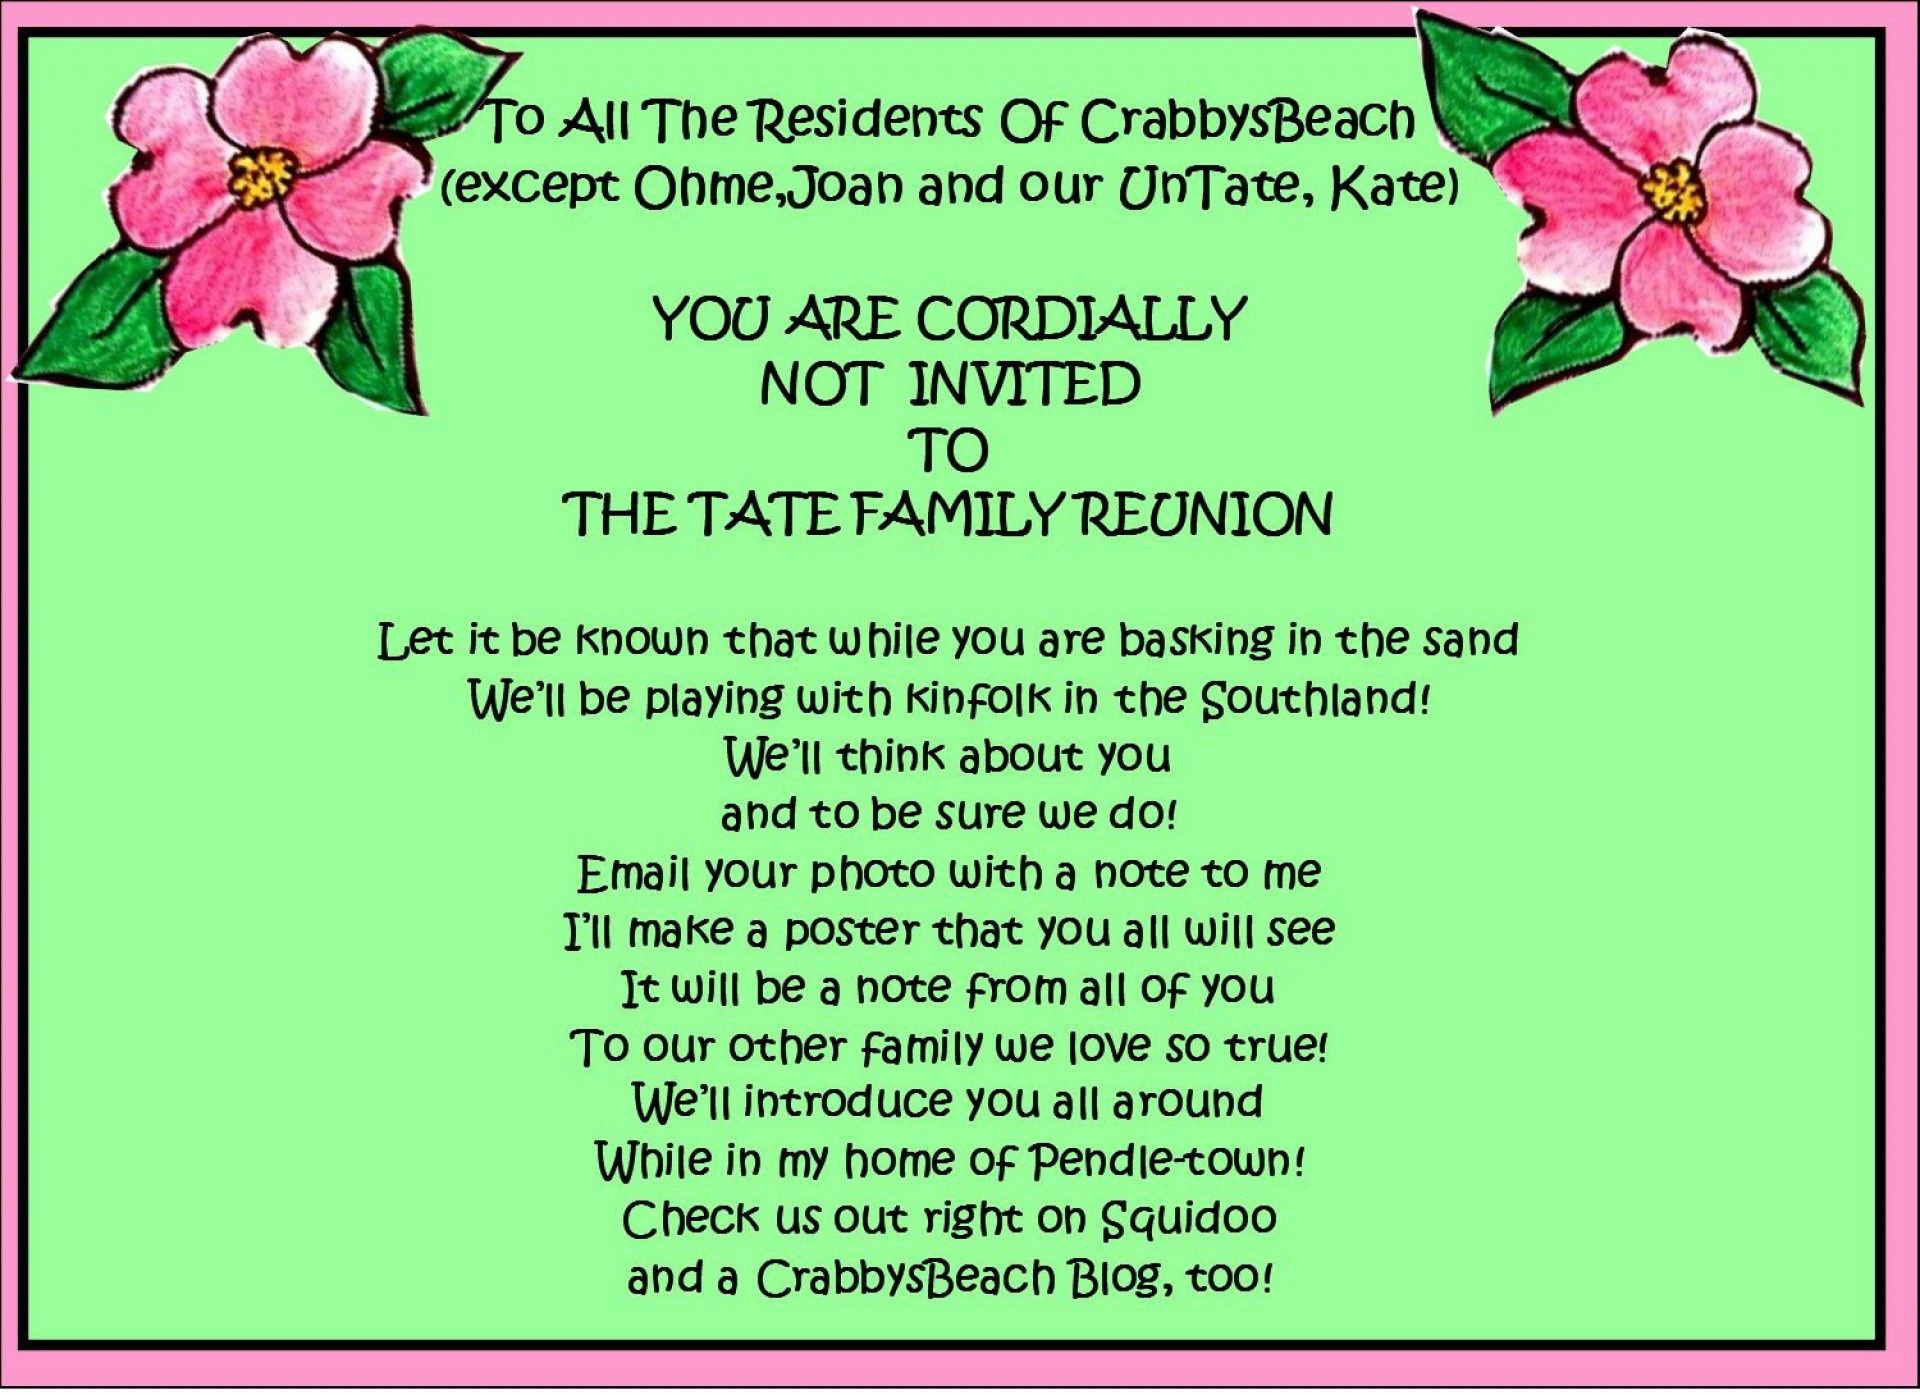 003 Singular Family Reunion Invitation Template Free High Def  For Word Online1920